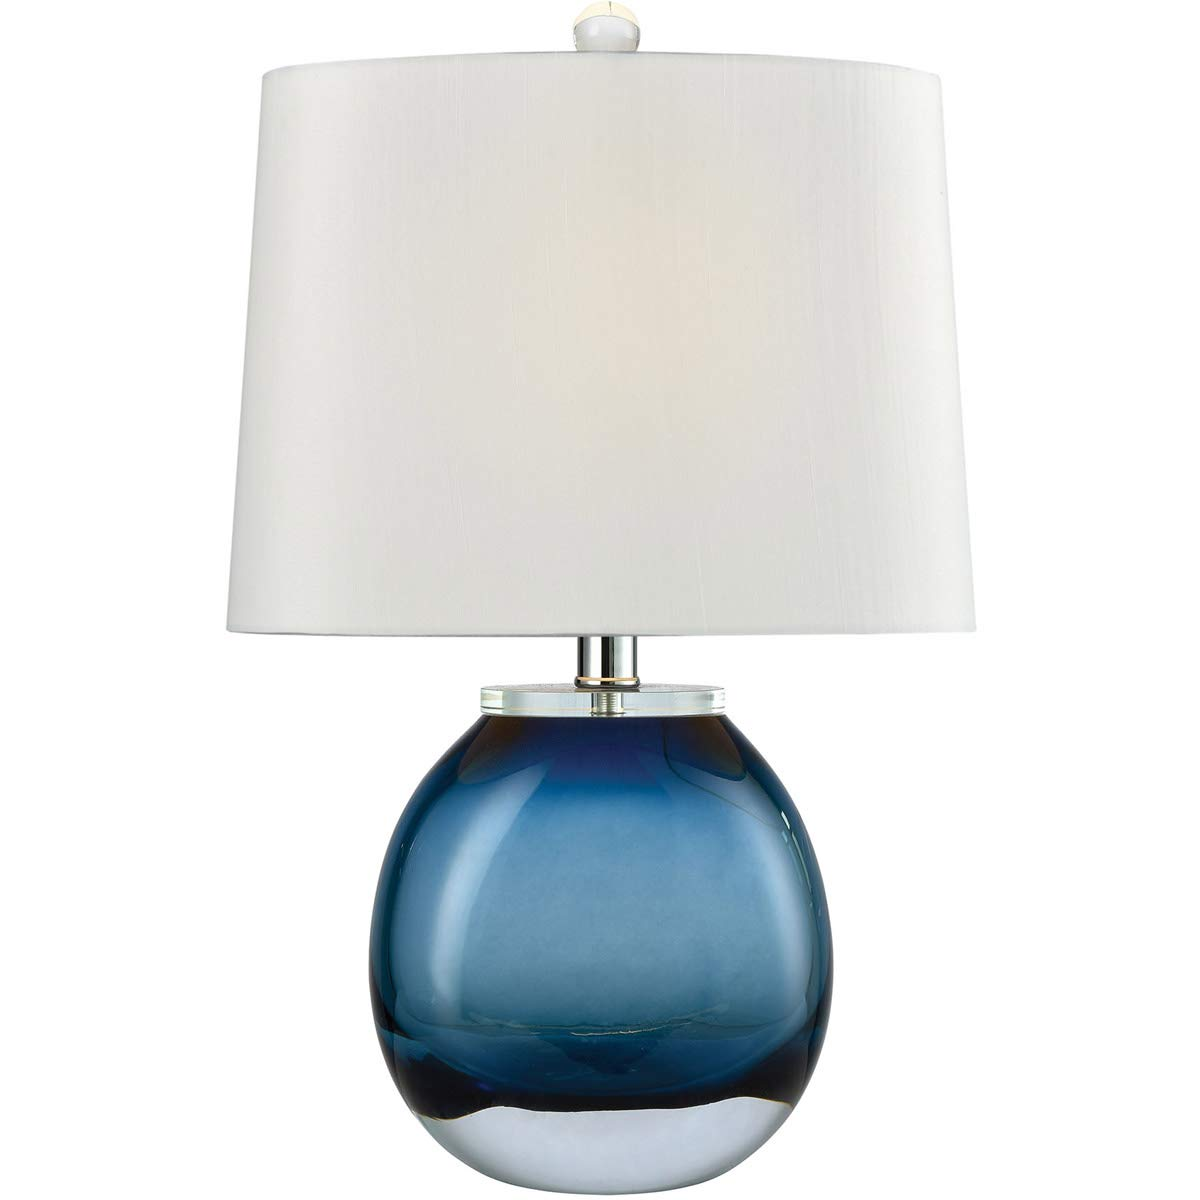 Table lamps 1 light fixtures with blue finish free blown glass material e26 19 60 watts amazon com